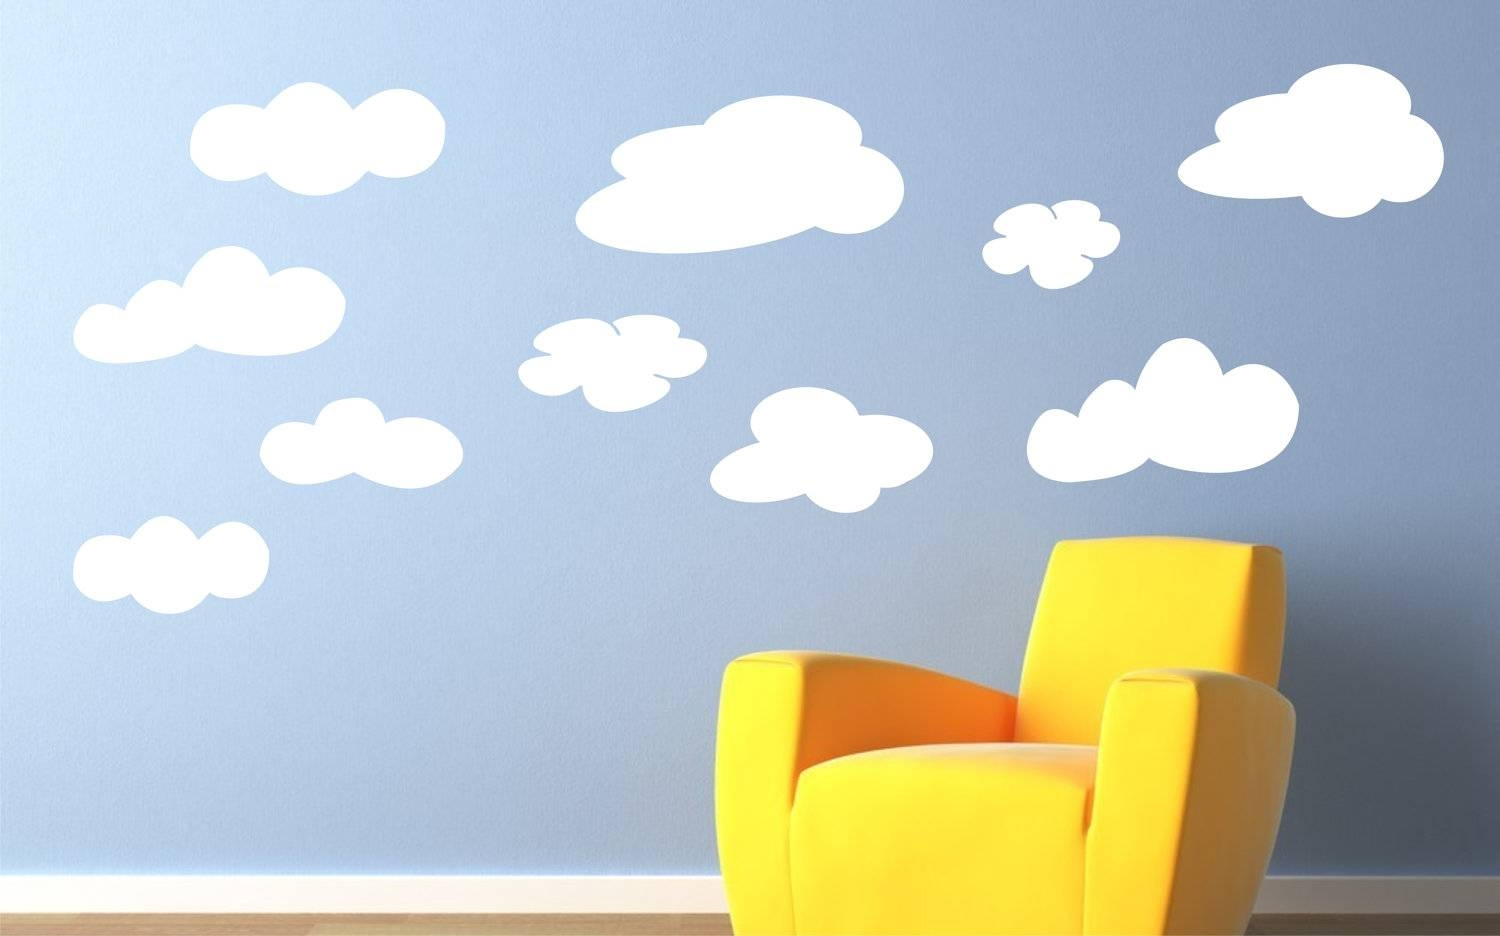 Childrens Decor Vinyl Wall Art Clouds Childrens Wall Decal Intended For Most Recent Etsy Childrens Wall Art (View 5 of 20)